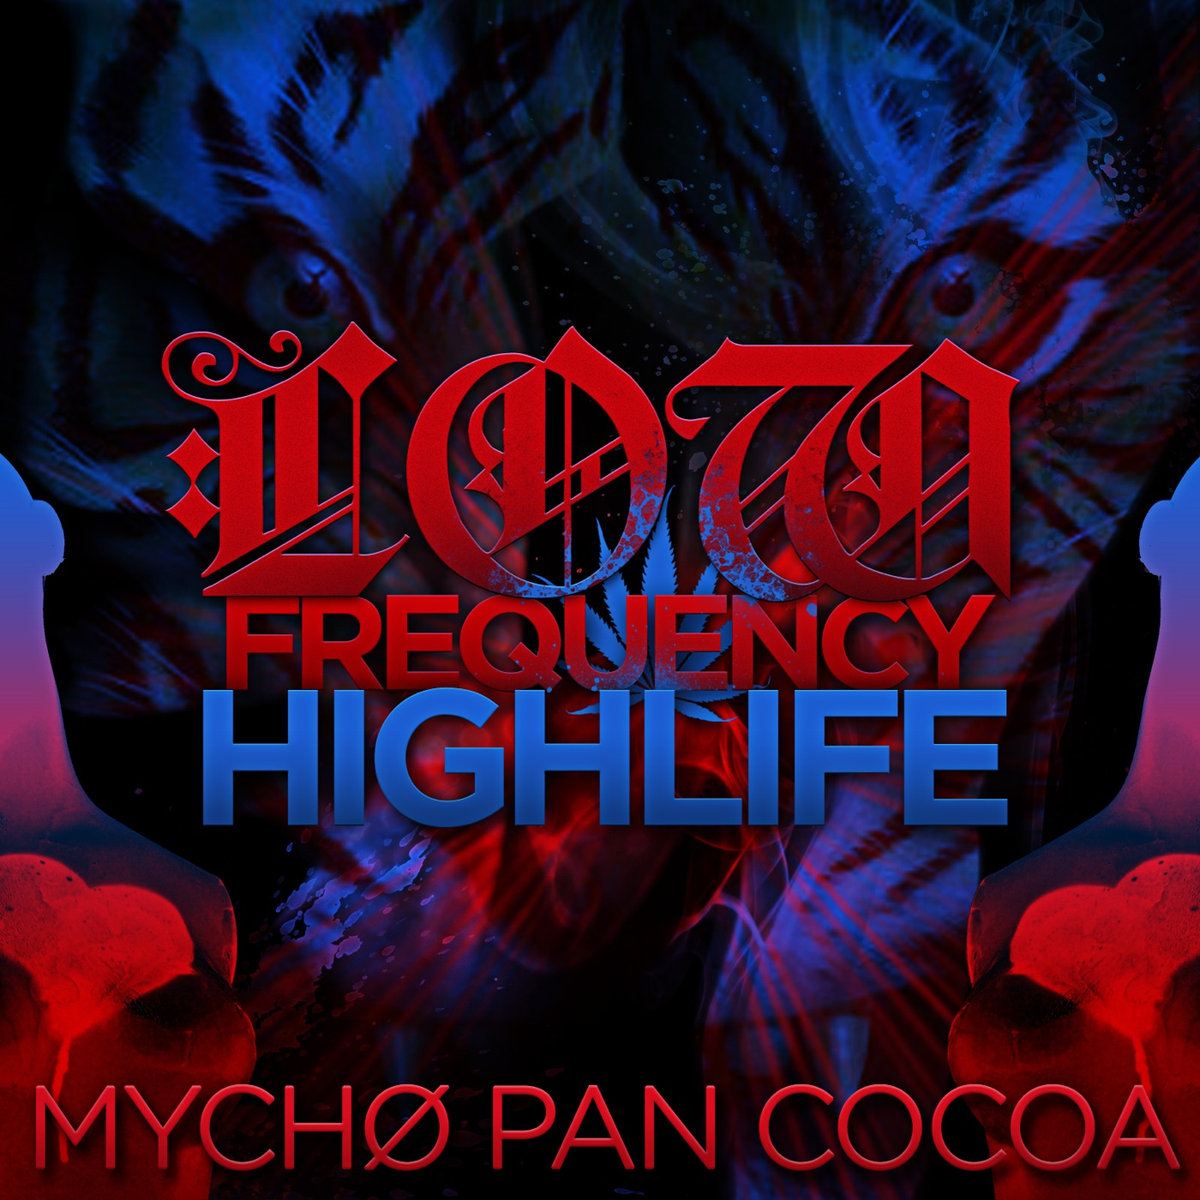 Mycho Pan Cocoa - Rolling With My Crew (Mycho Pan Cocoa Remix) @ 'Low Frequency High Life' album (electronic, dubstep)